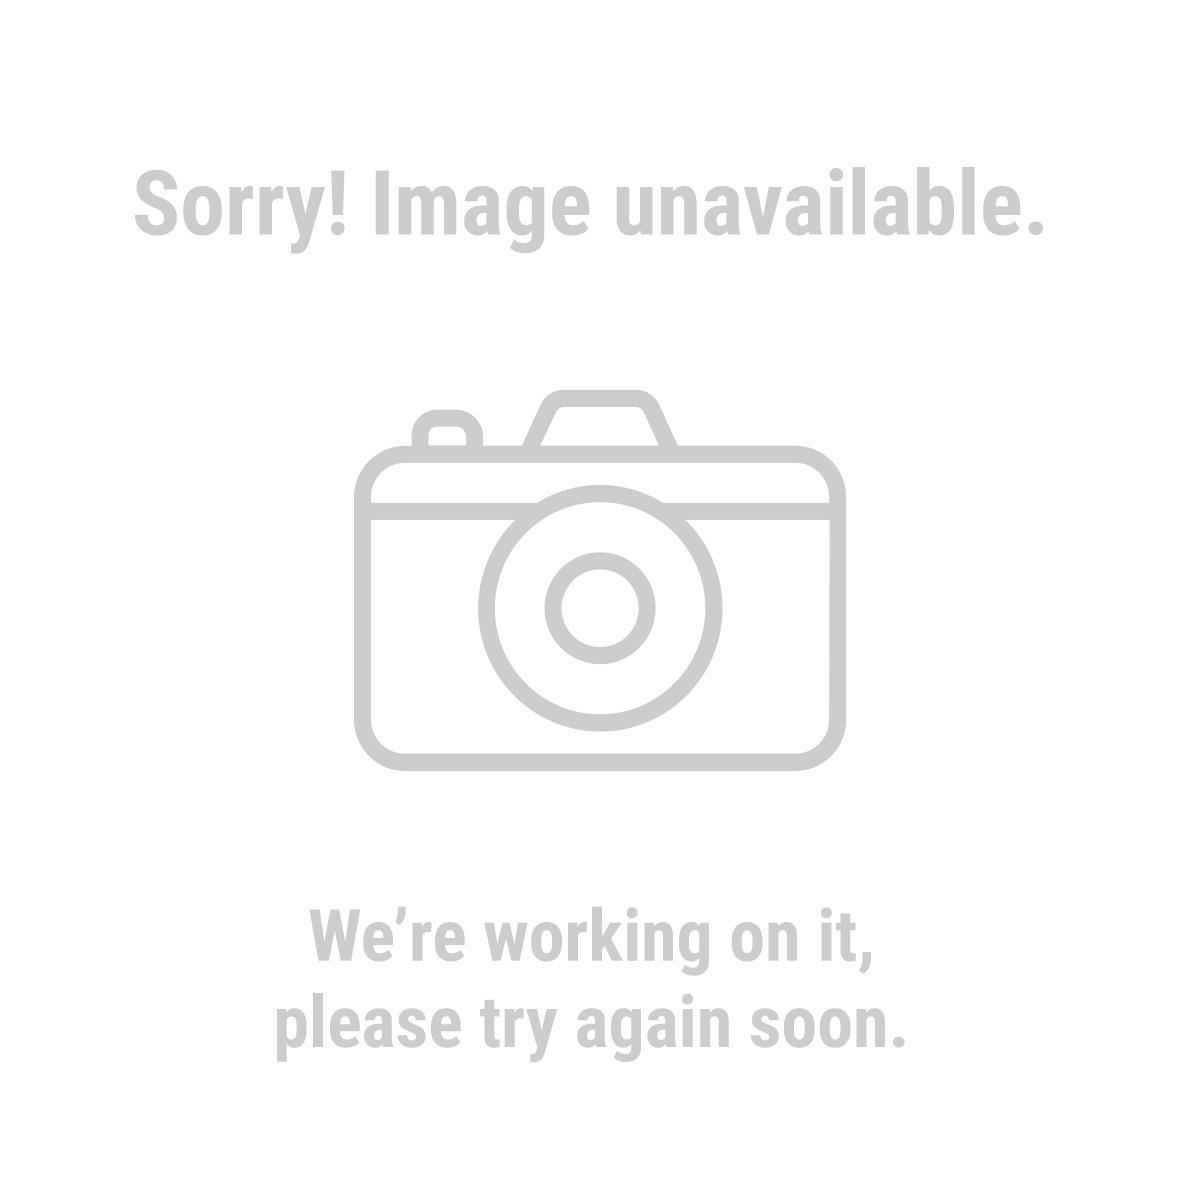 "Central Forge 34145 2 Piece 5400 lbs. 3/8"" Clevis Grab Hooks"